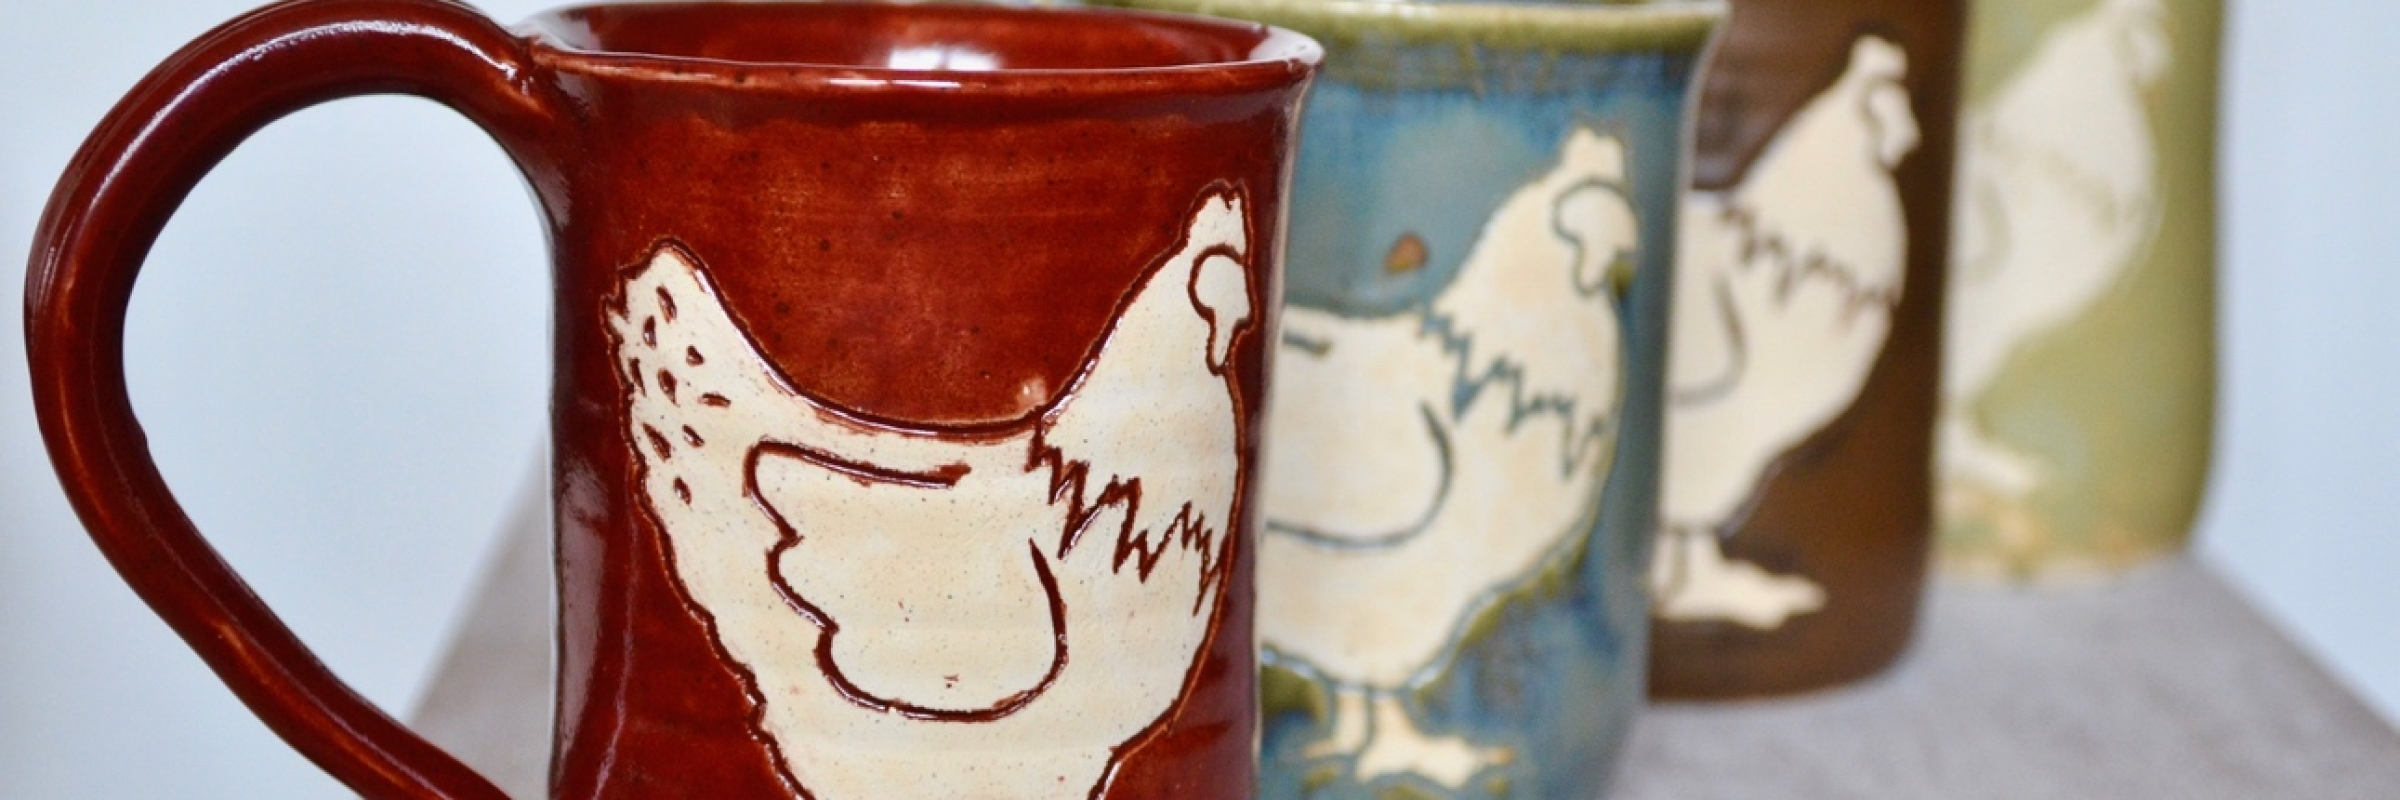 These adorable chicken mugs come in a variety of colors, hold 16 ounces, and have a surprise nest in the bottom!